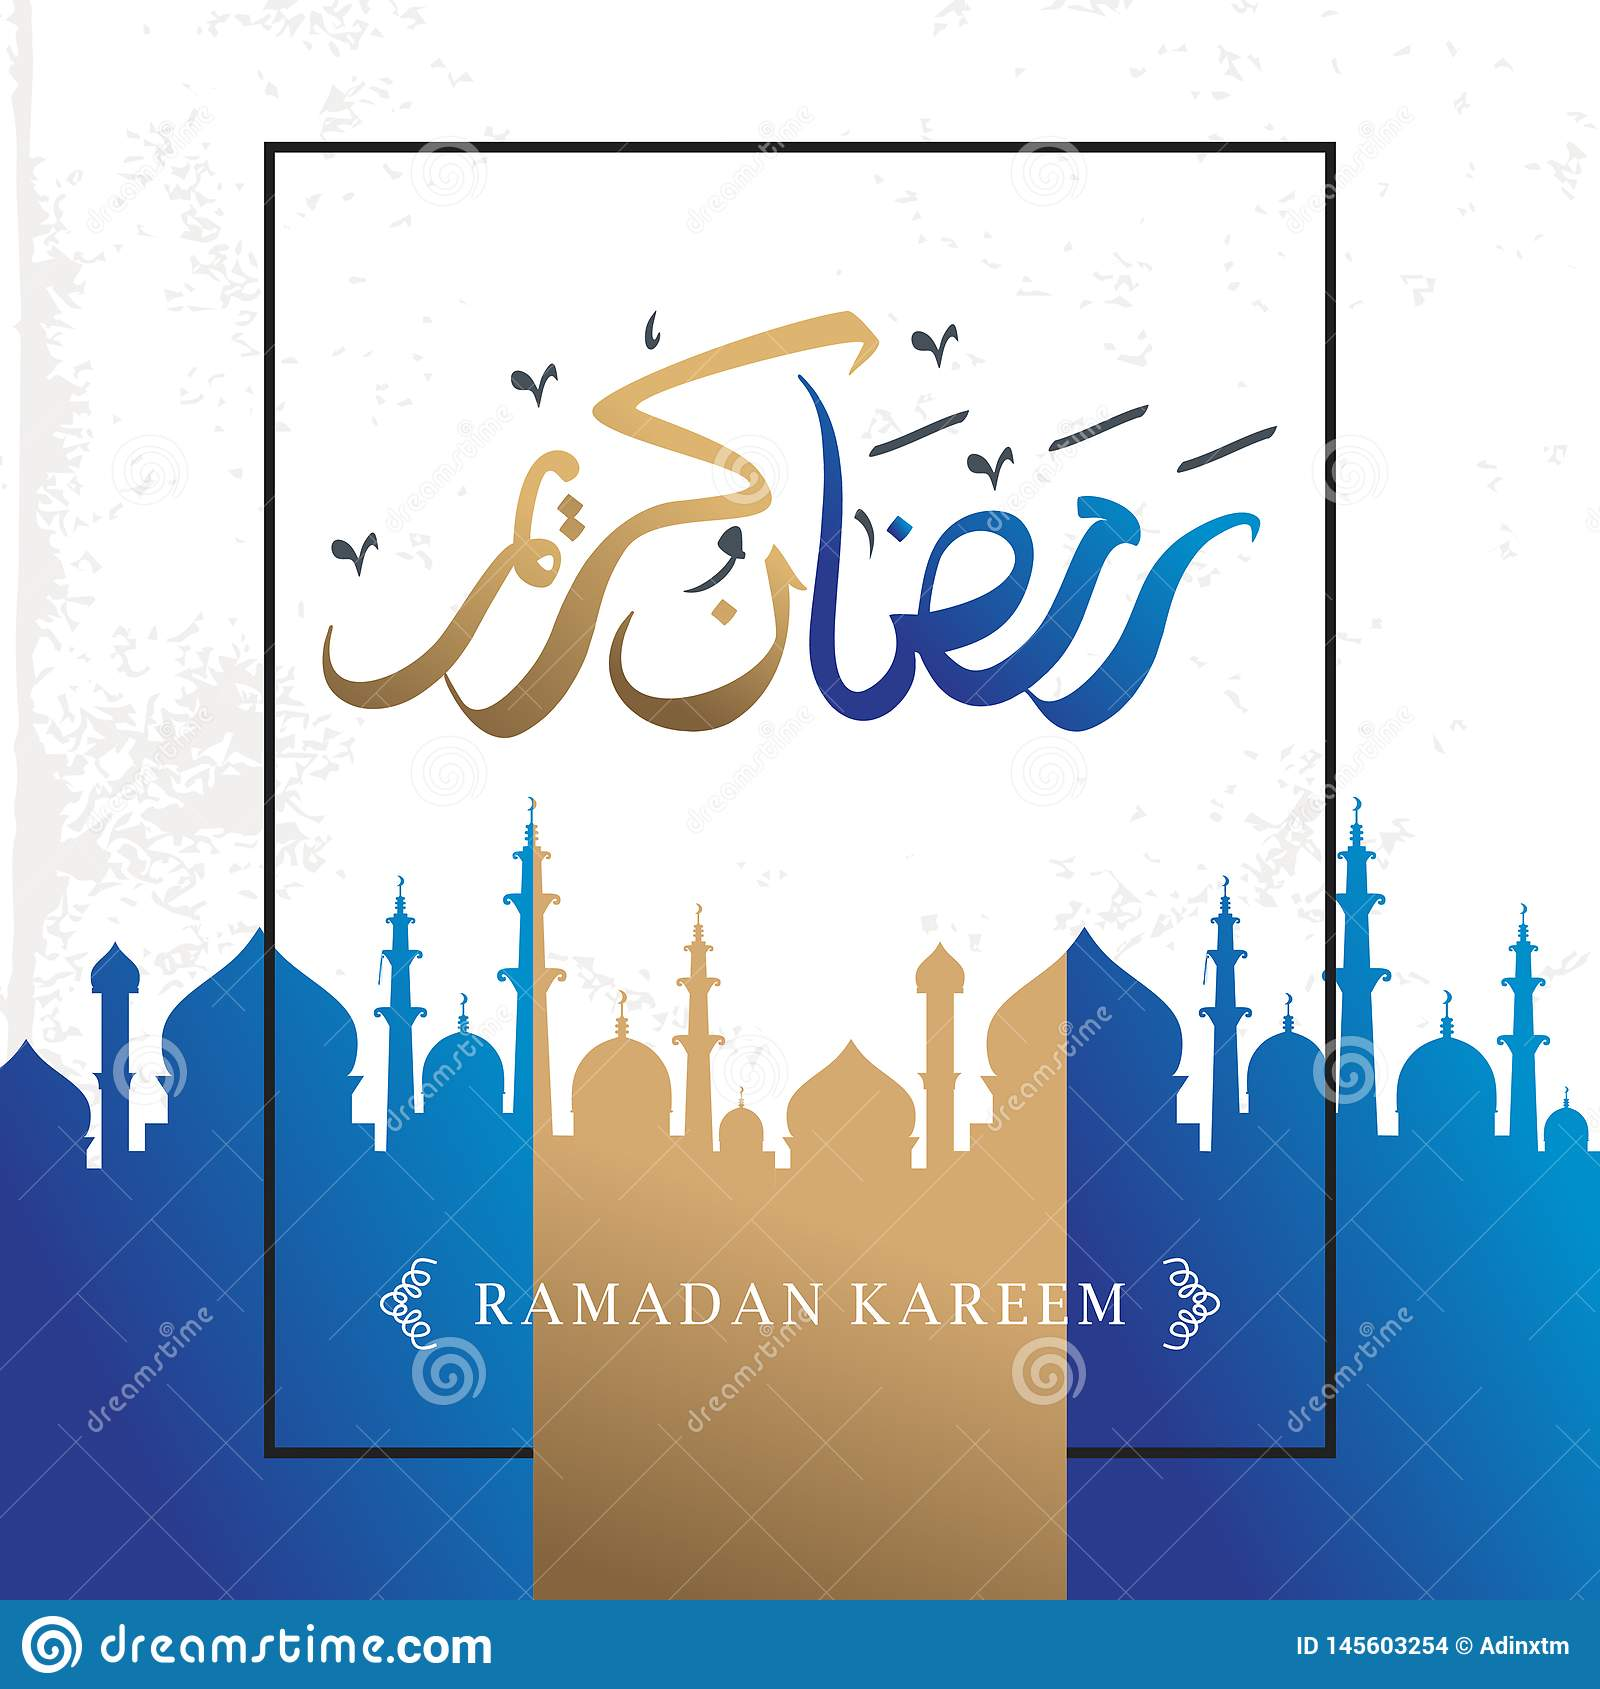 Ramadan Kareem elegant design greeting background for muslim community with arabic calligraphy and frame colorful style